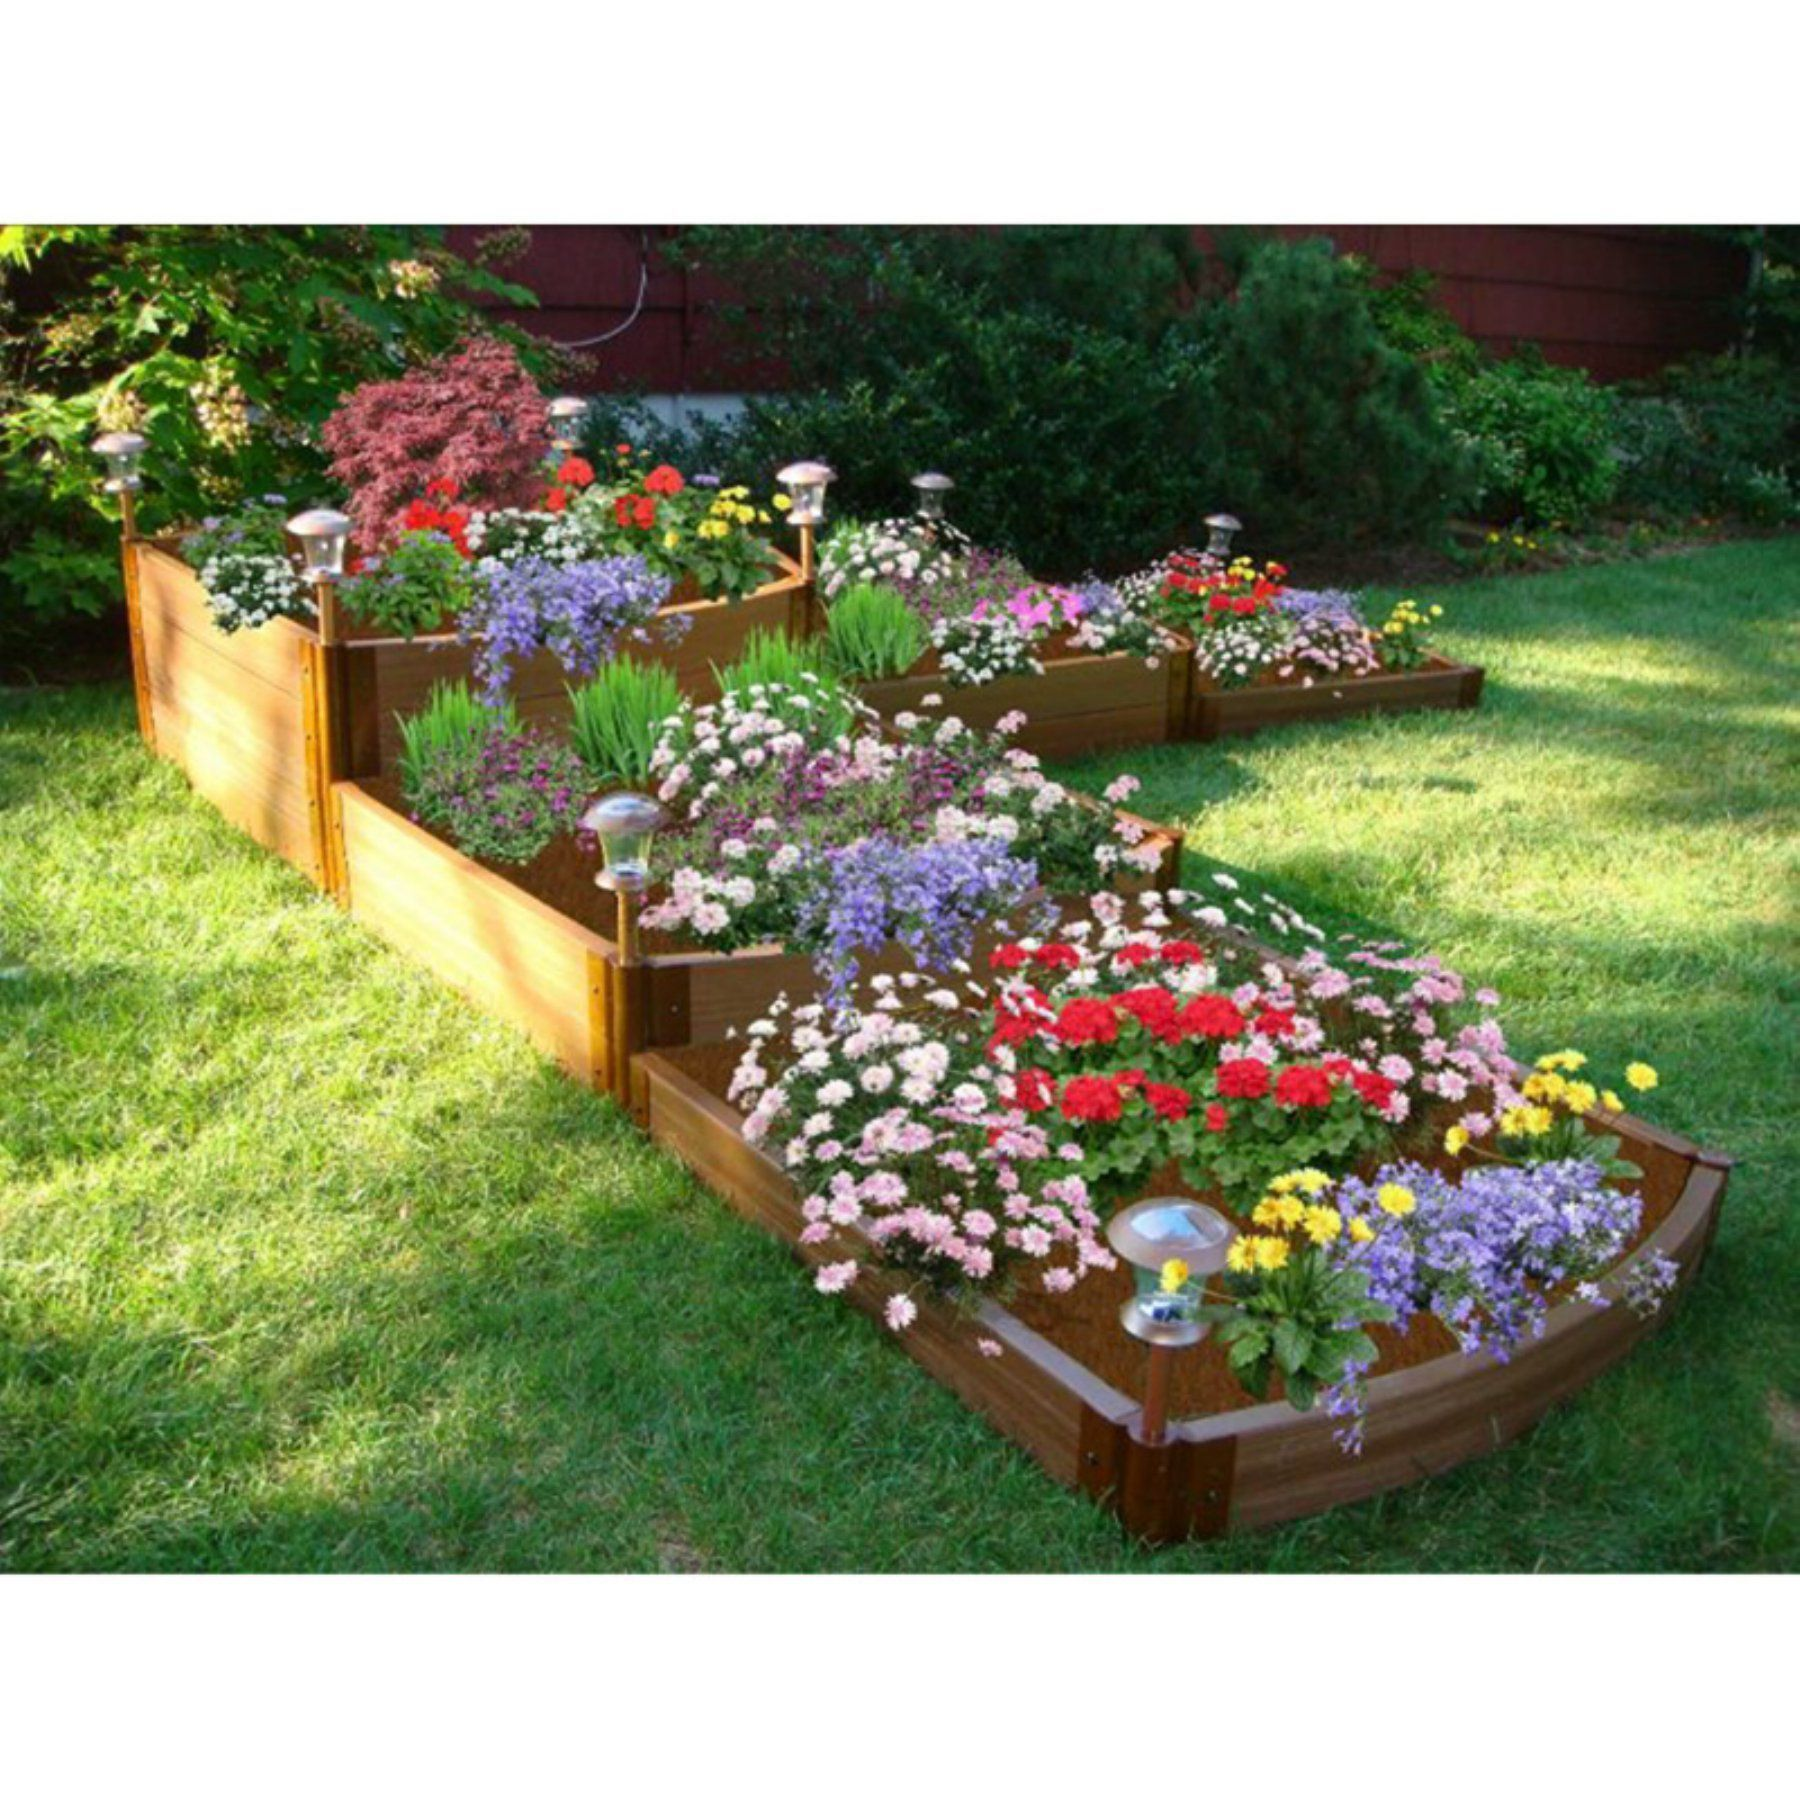 Tiny Landscaping Ideas For Kids